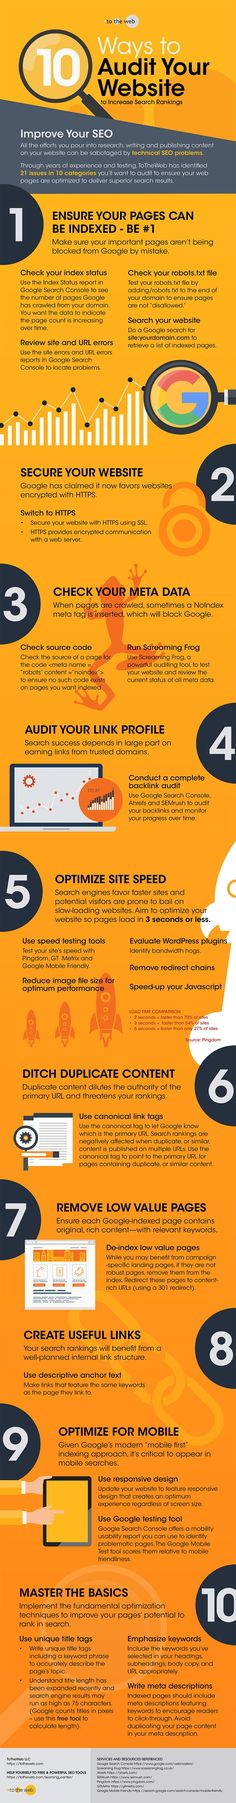 Website SEO Checklist: 10 Steps to Better Google Rankings [Infographic]